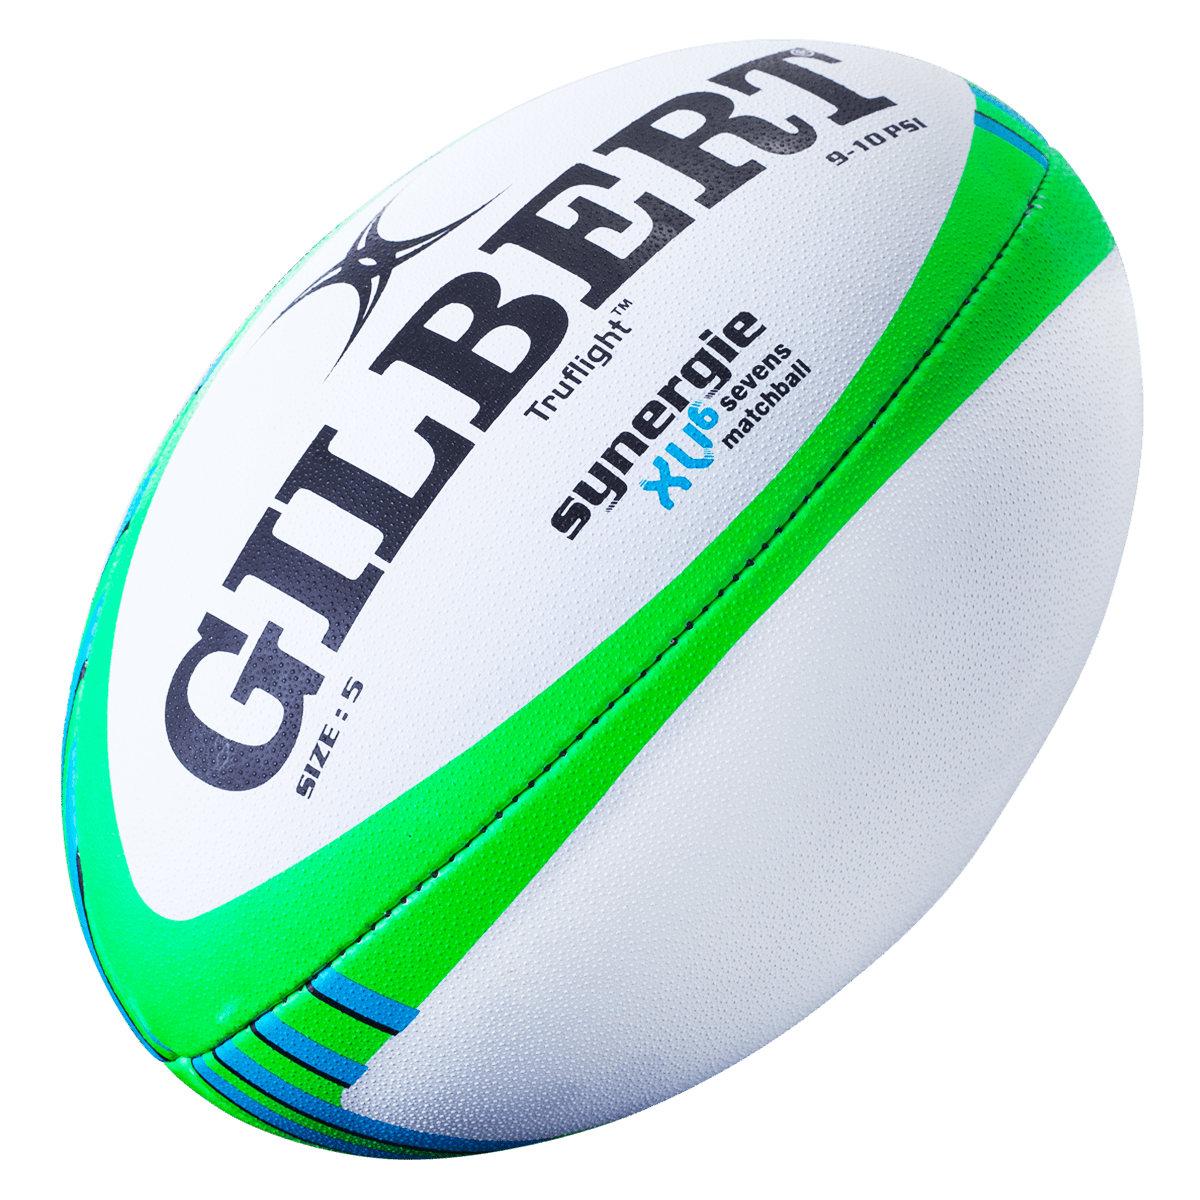 Gilbert XV-6 Sevens Match Ball